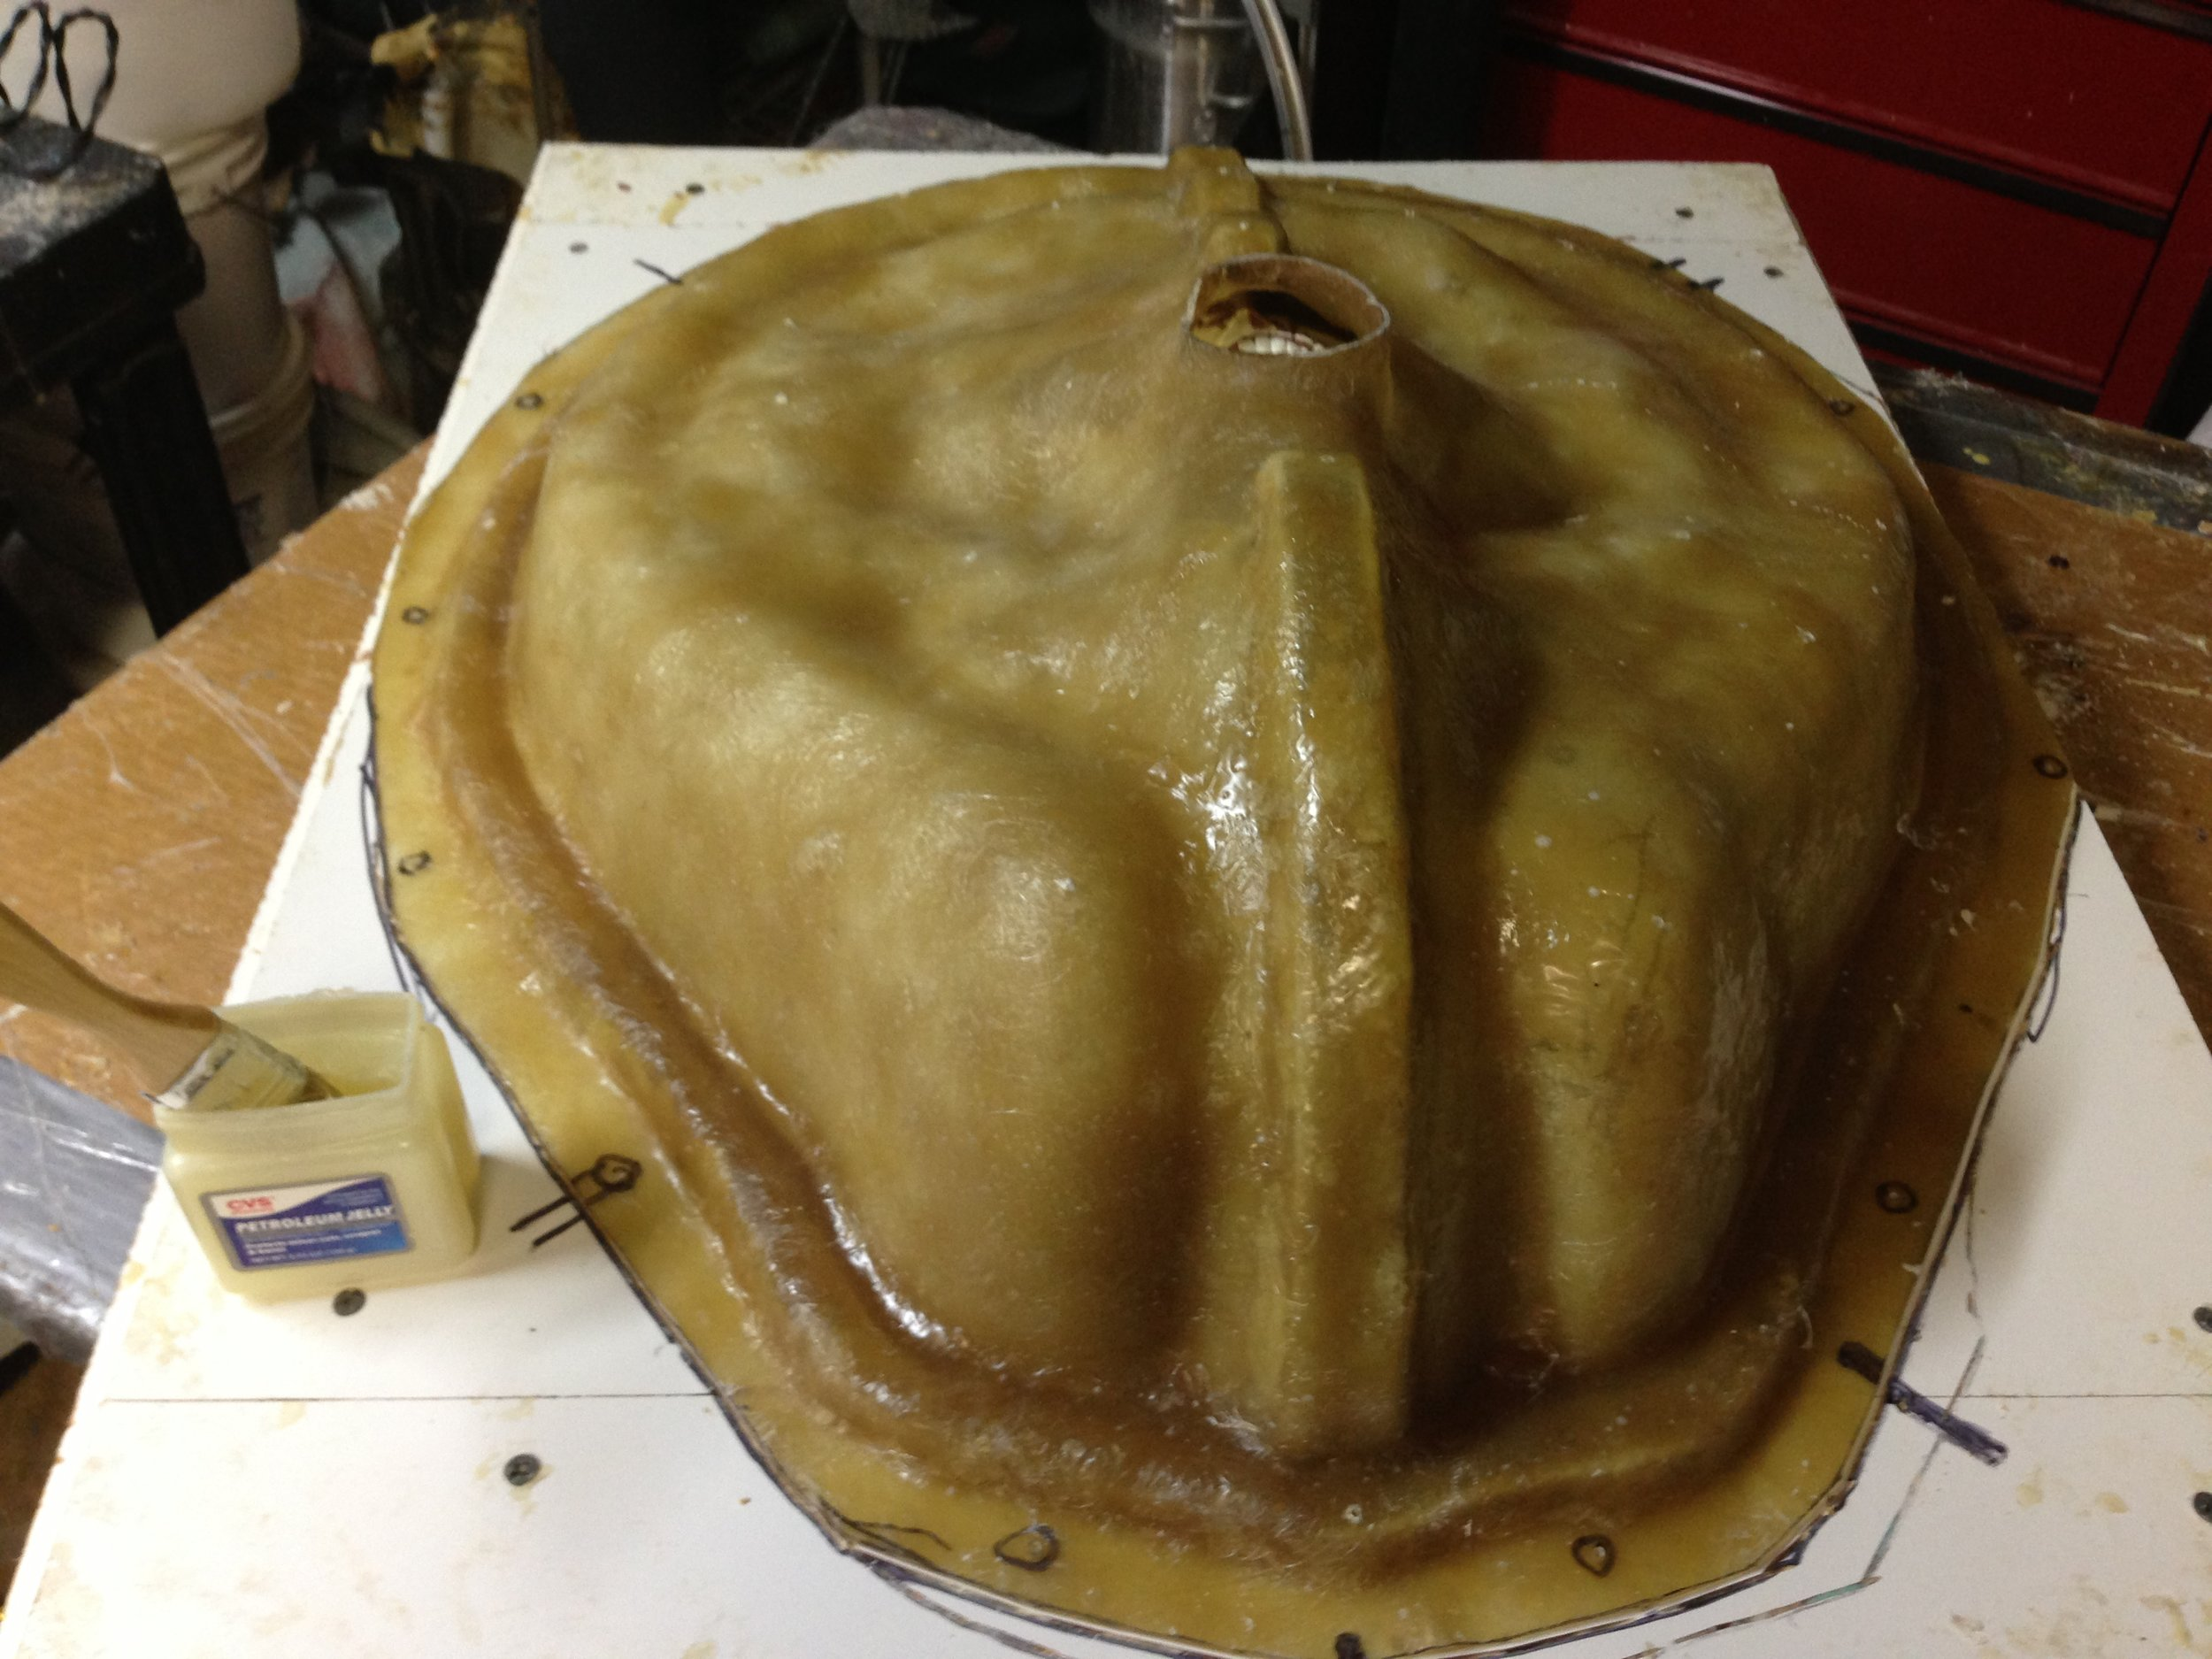 Fiberglass jacket over clay lay-up